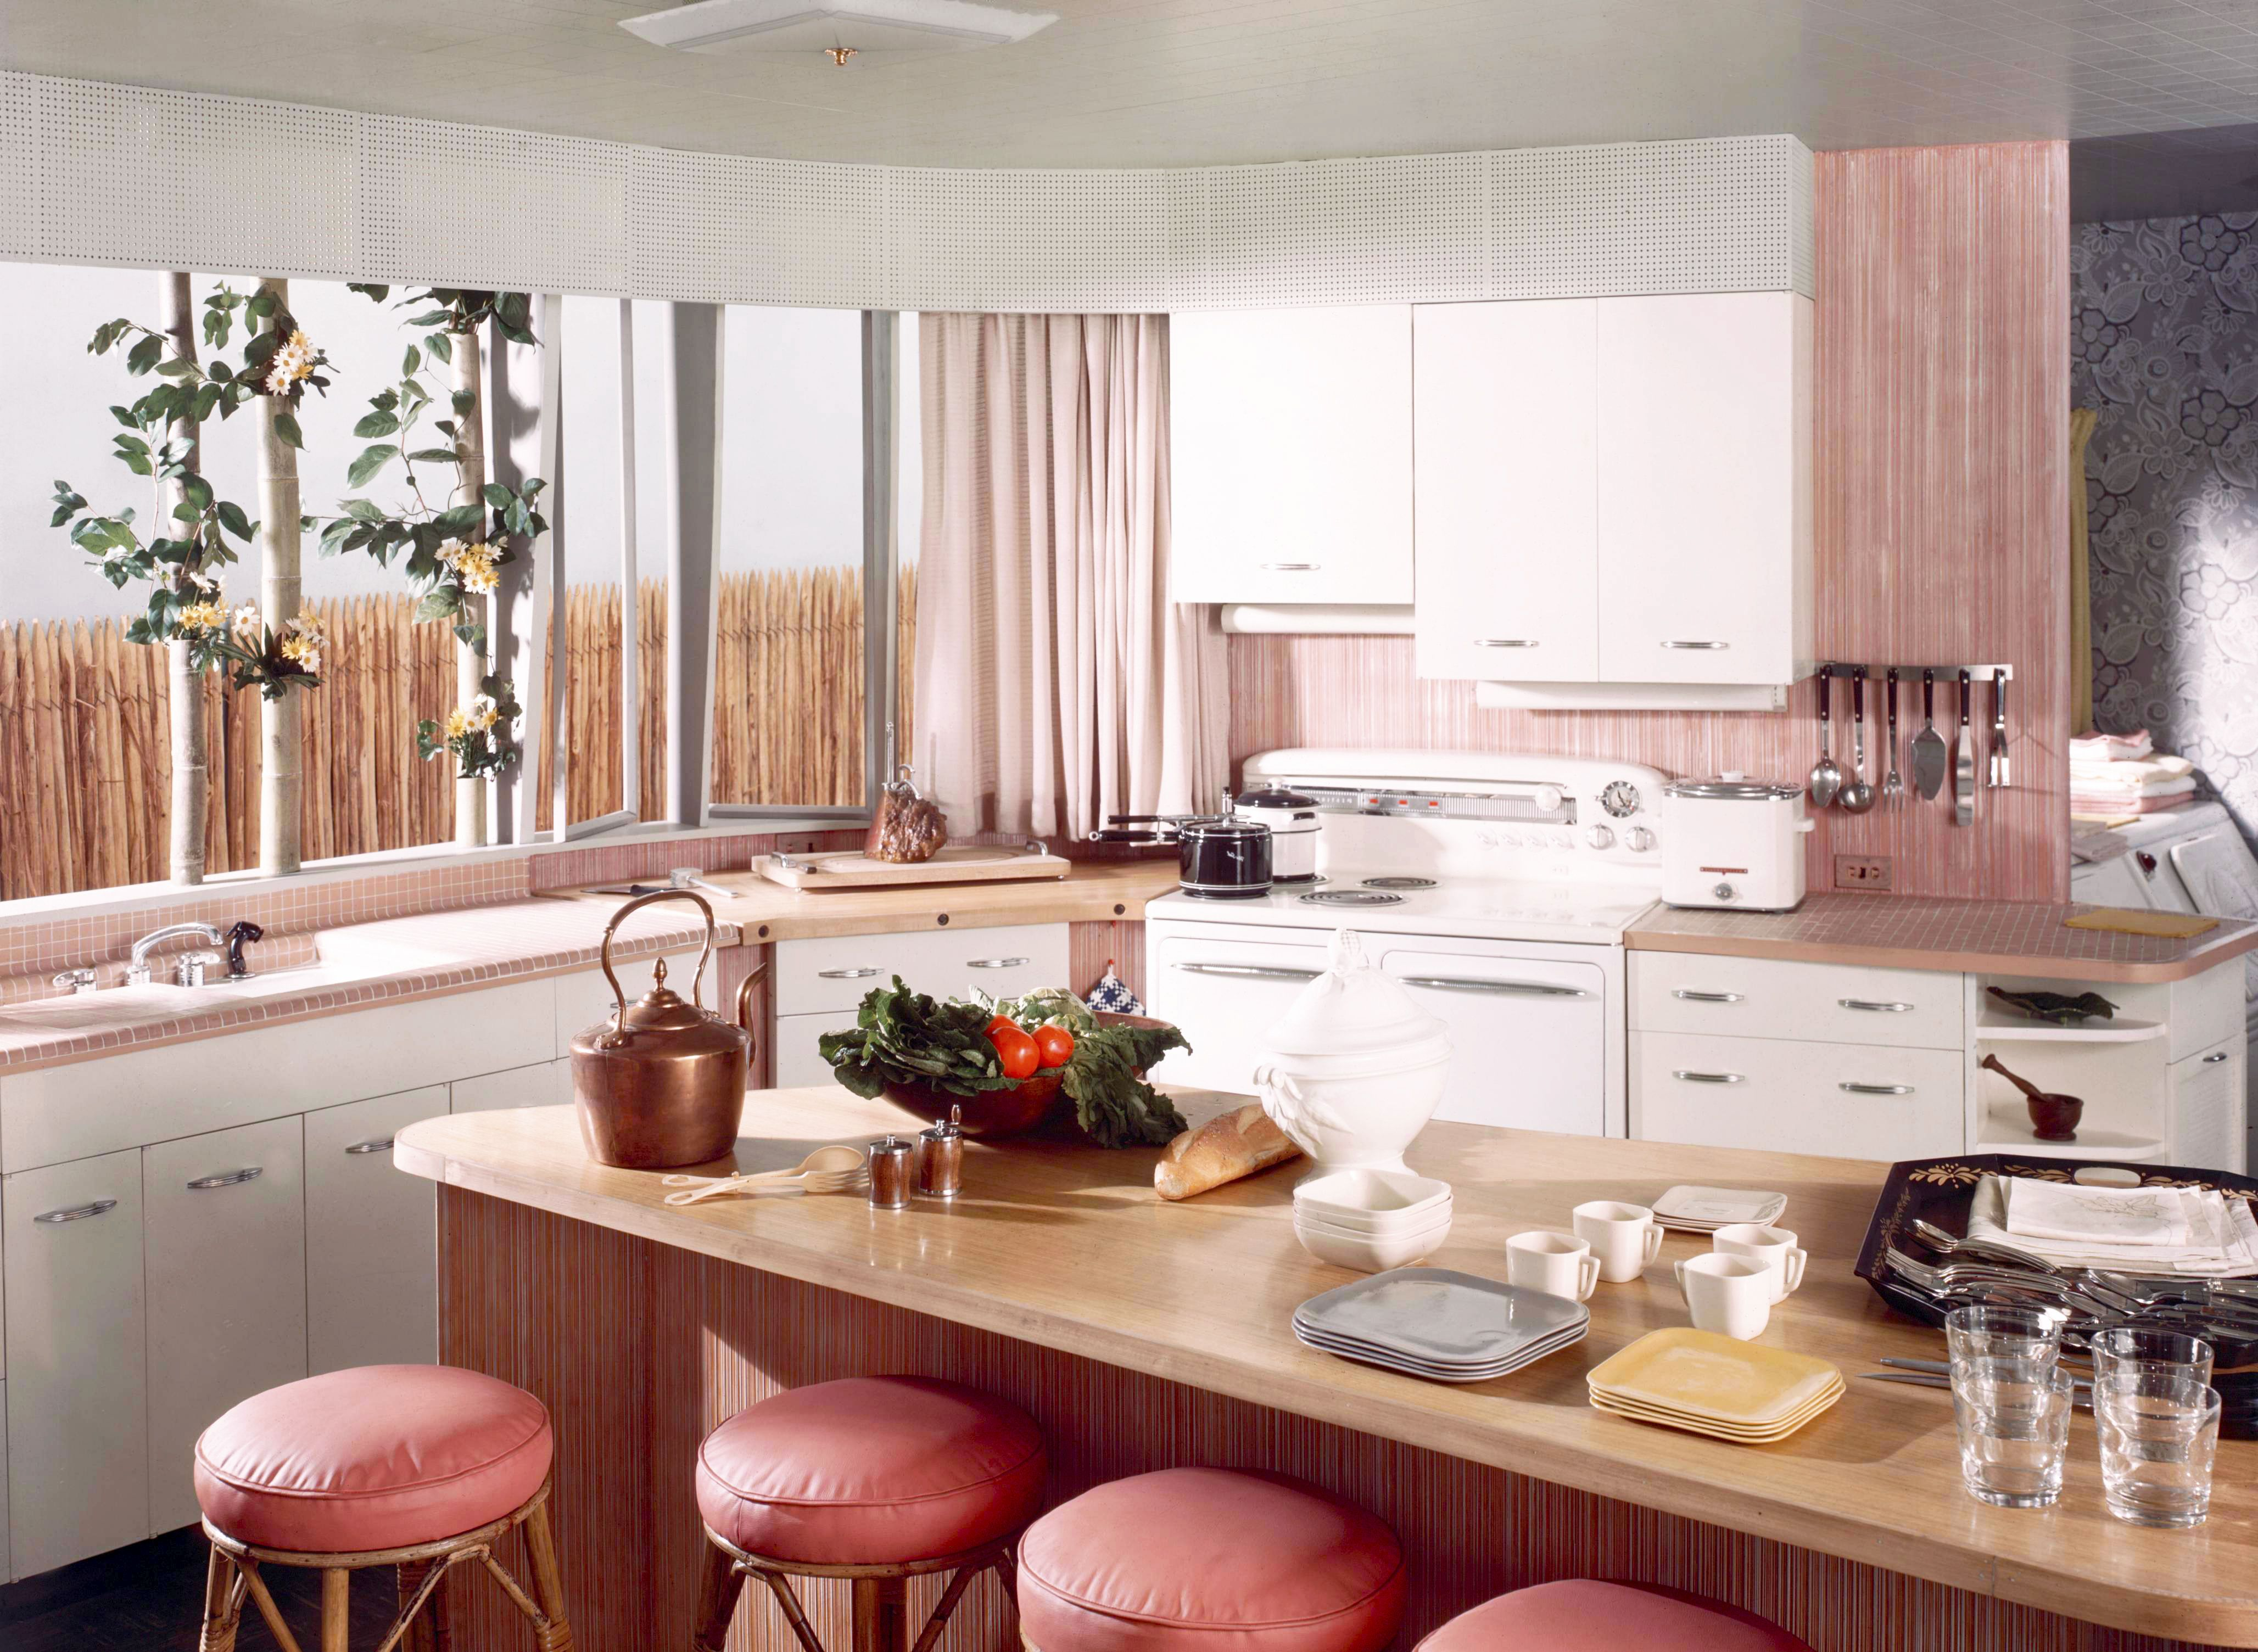 25 Cool Retro Kitchens How To Decorate A Kitchen In Throwback Style